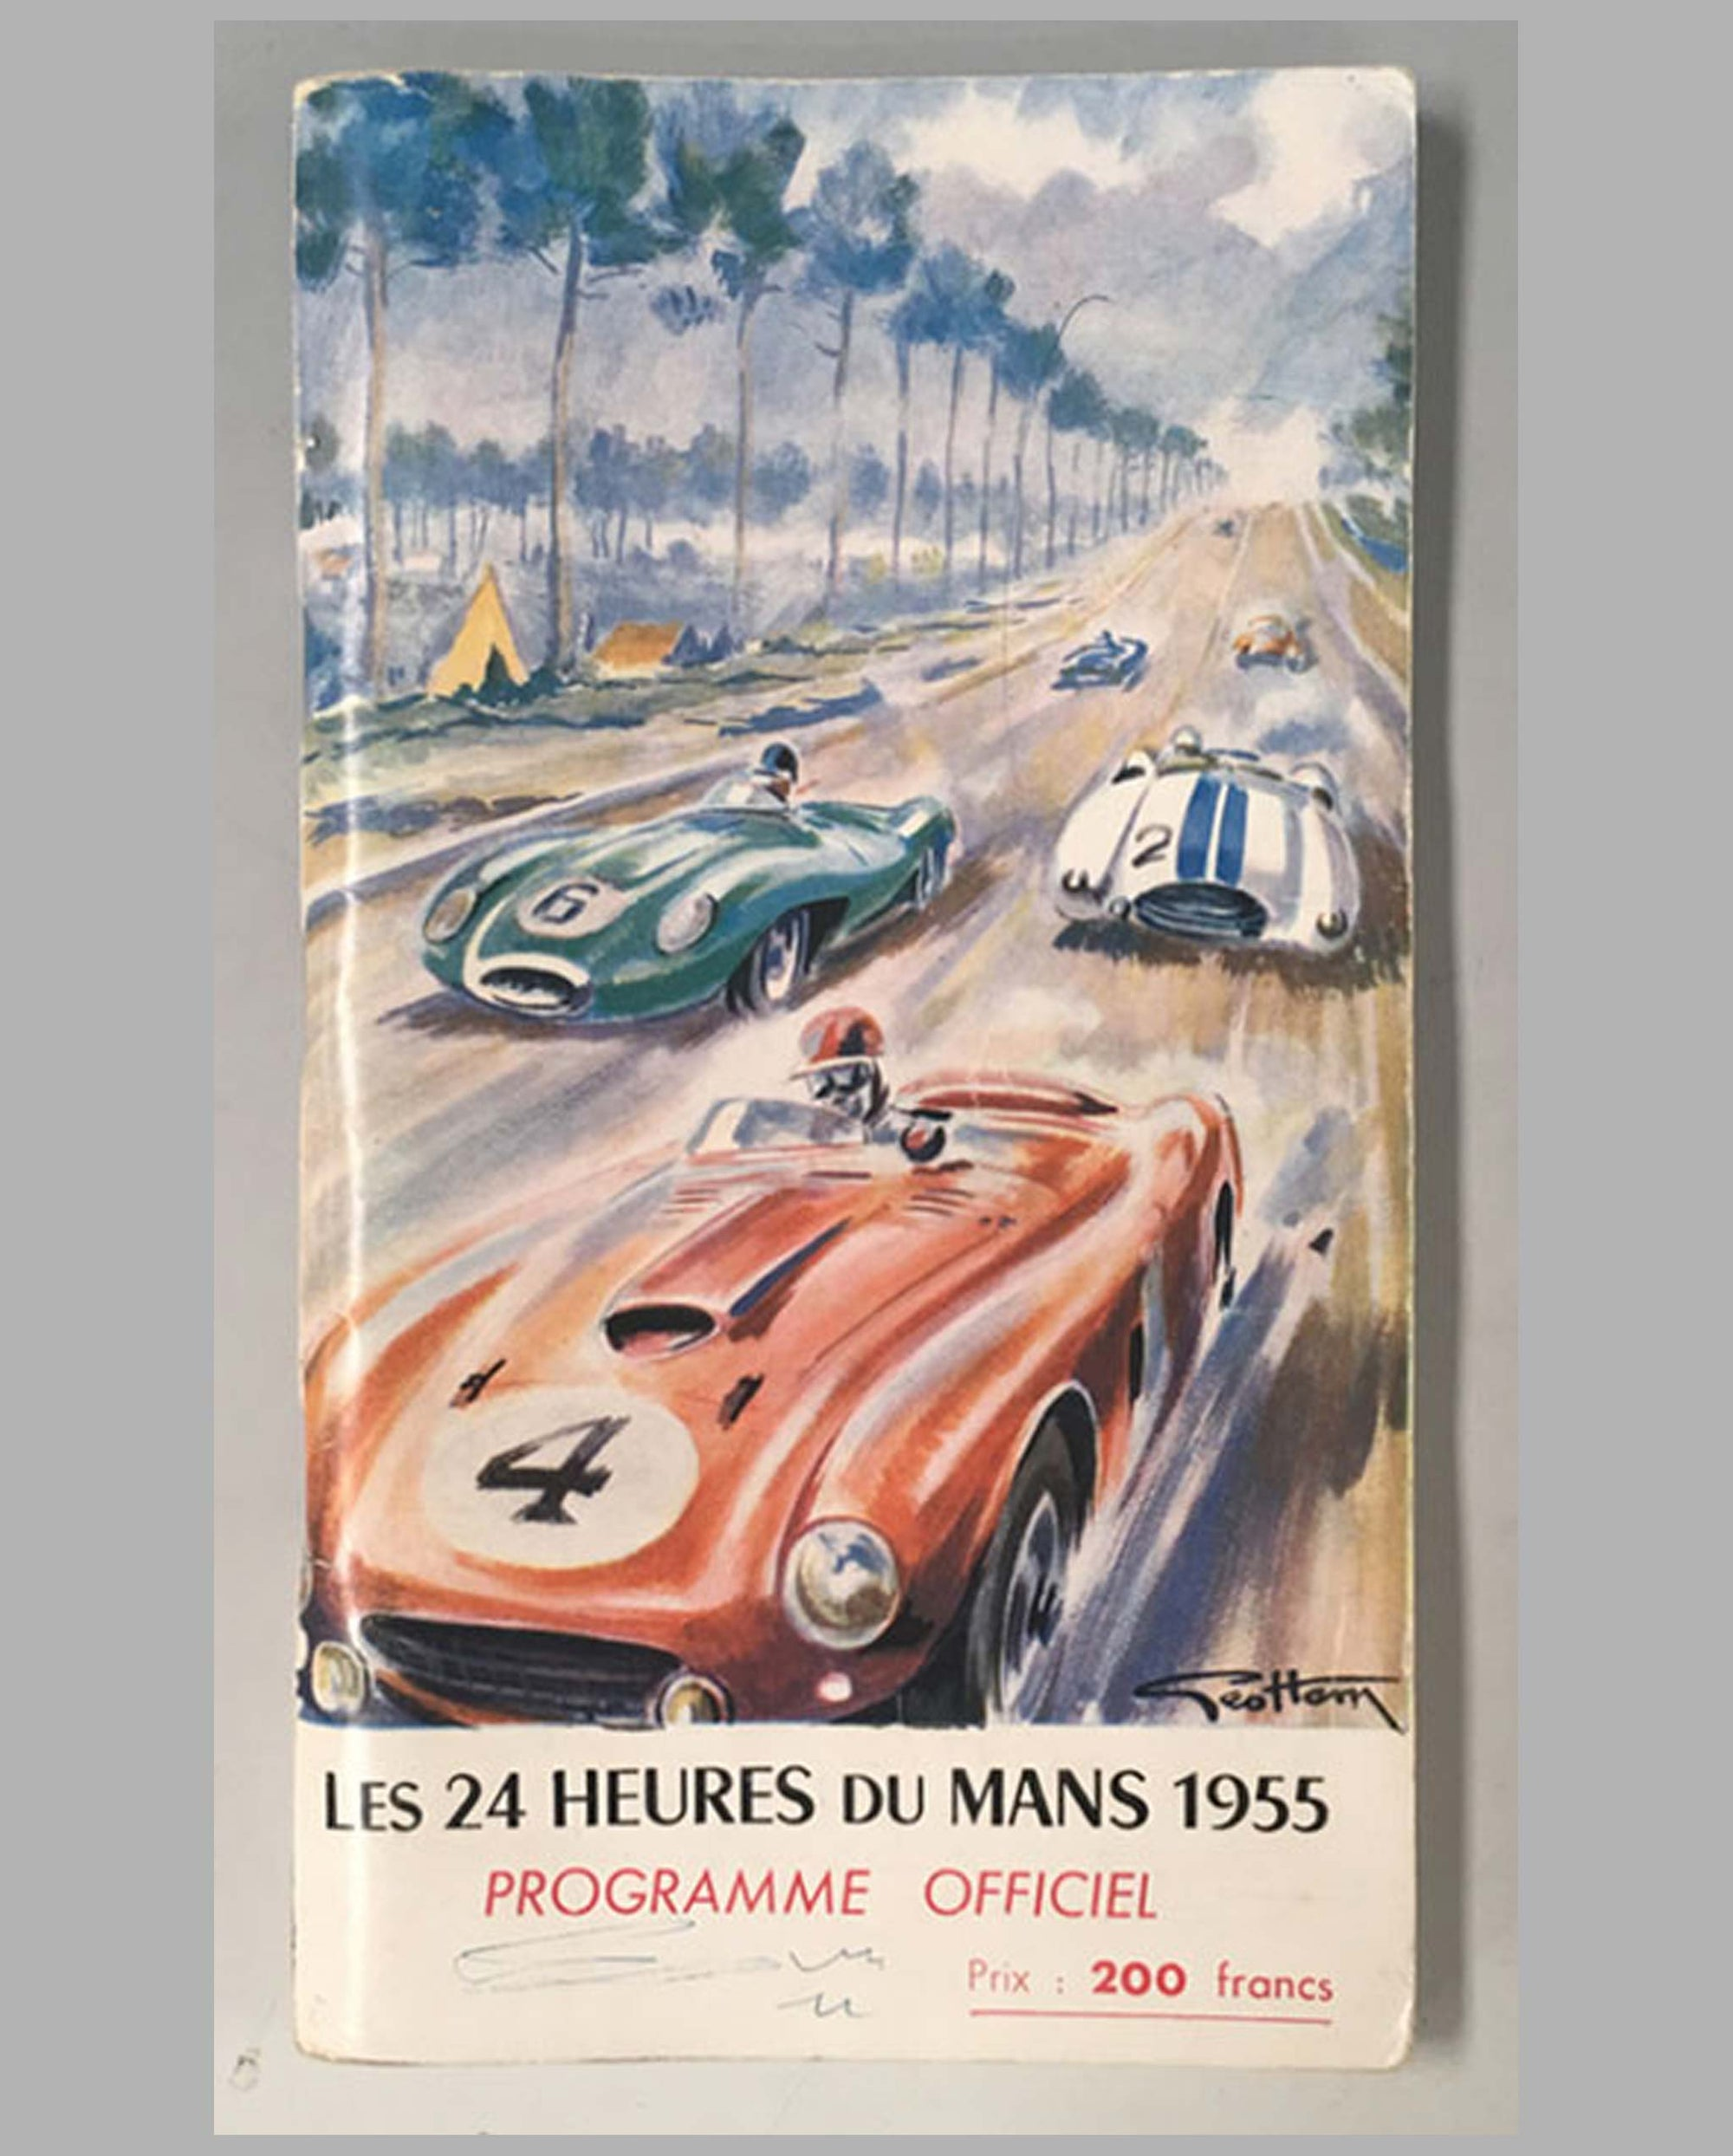 1955 - 24 heures du Mans official program - cover by Geo Ham